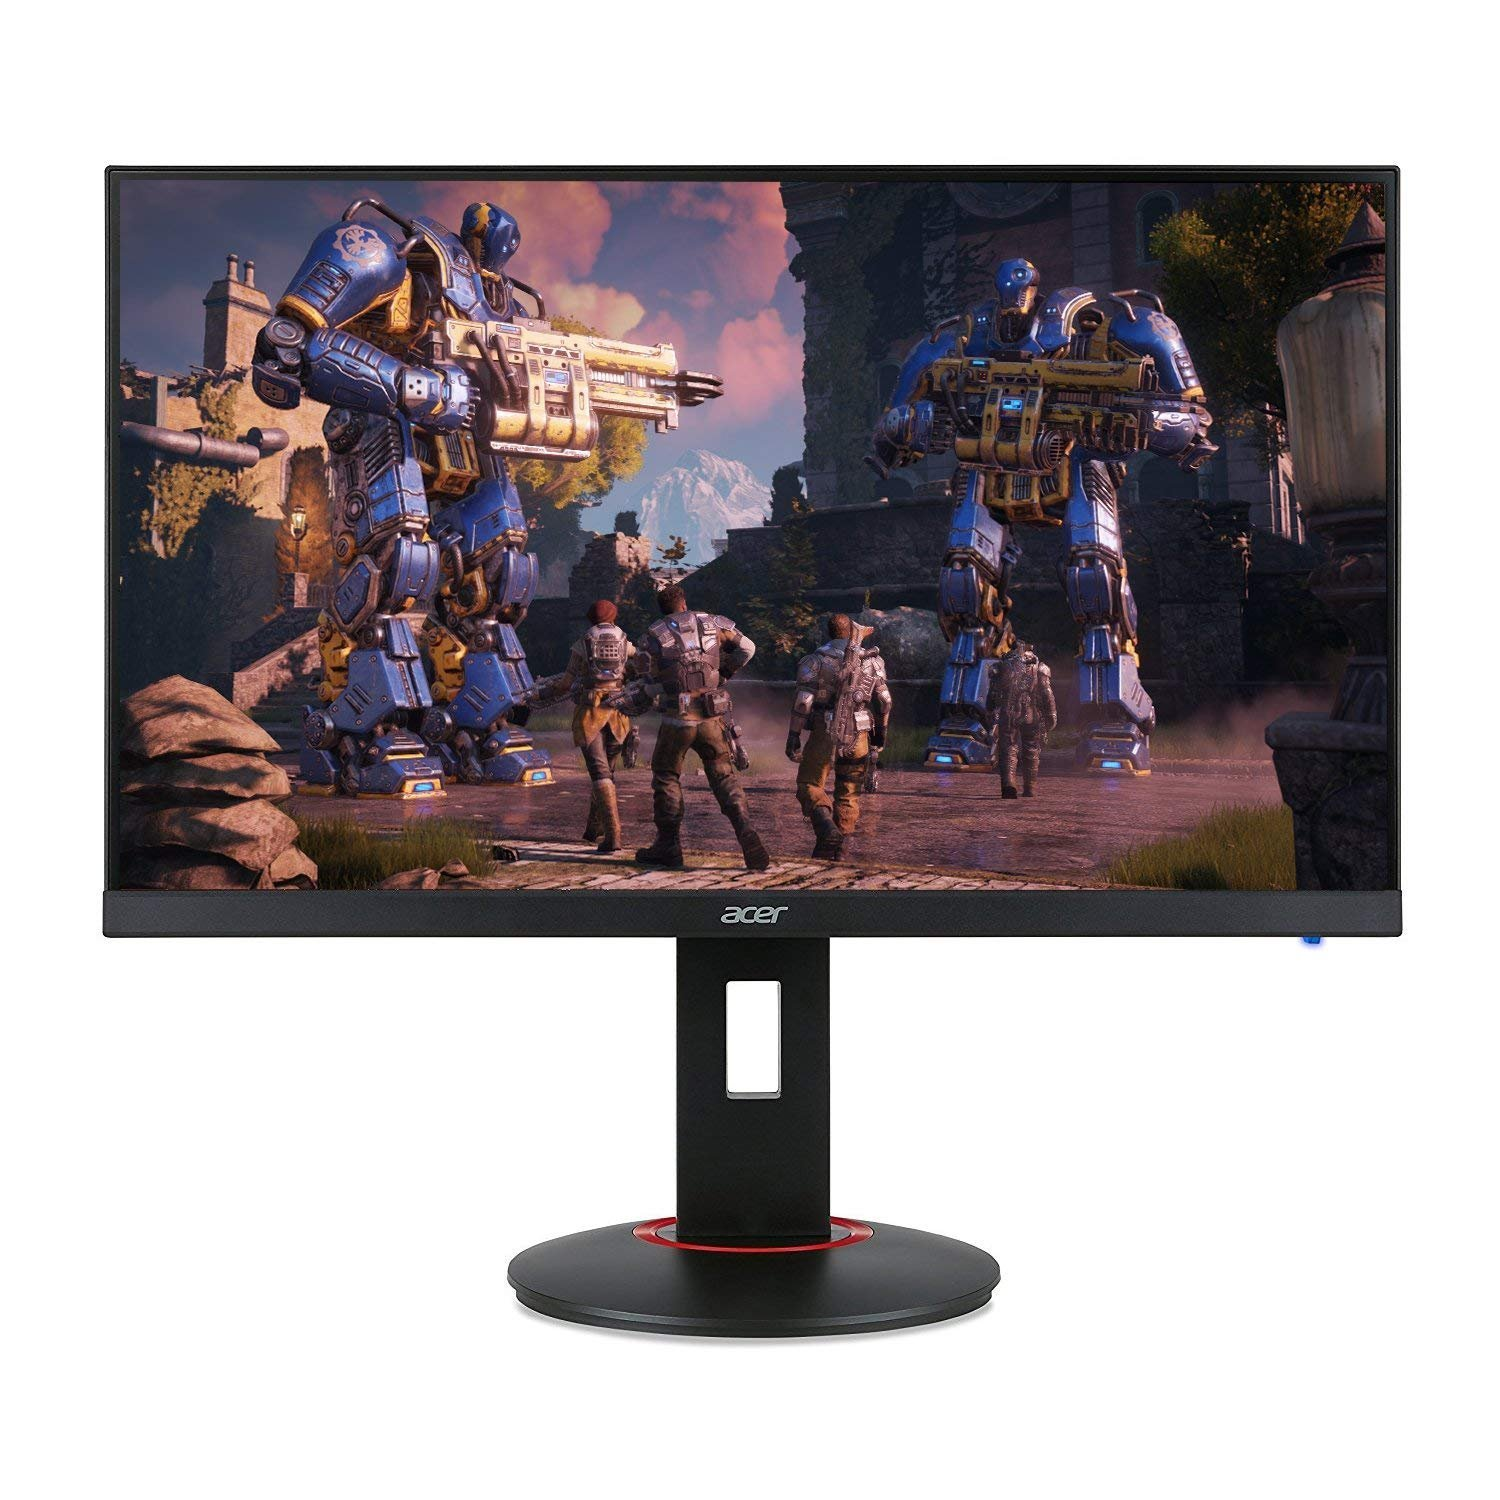 Acer XF270H Bbmiiprx 27 Full HD 1920 x 1080 Zero Frame TN AMD FreeSync and NVIDIA G-SYNC Compatible Gaming Monitor – 1ms 144Hz Refresh Display Port 1.2 2 x HDMI 2.0 Ports